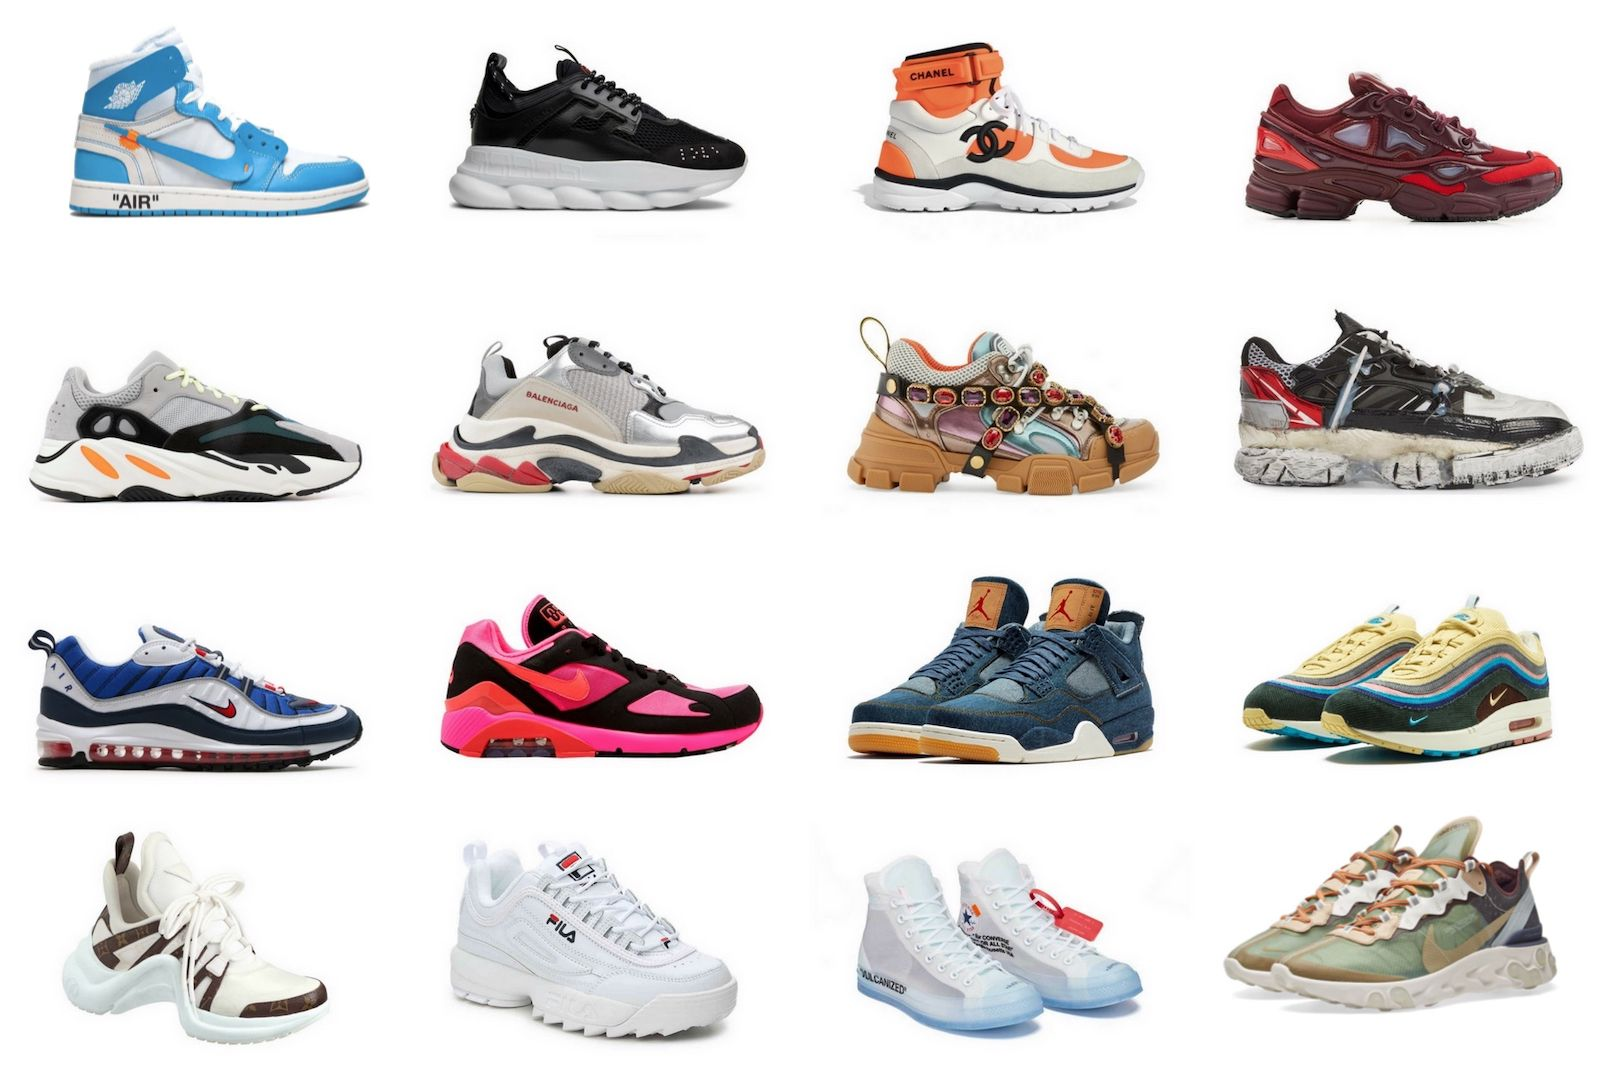 Sneaker Styles on the trend